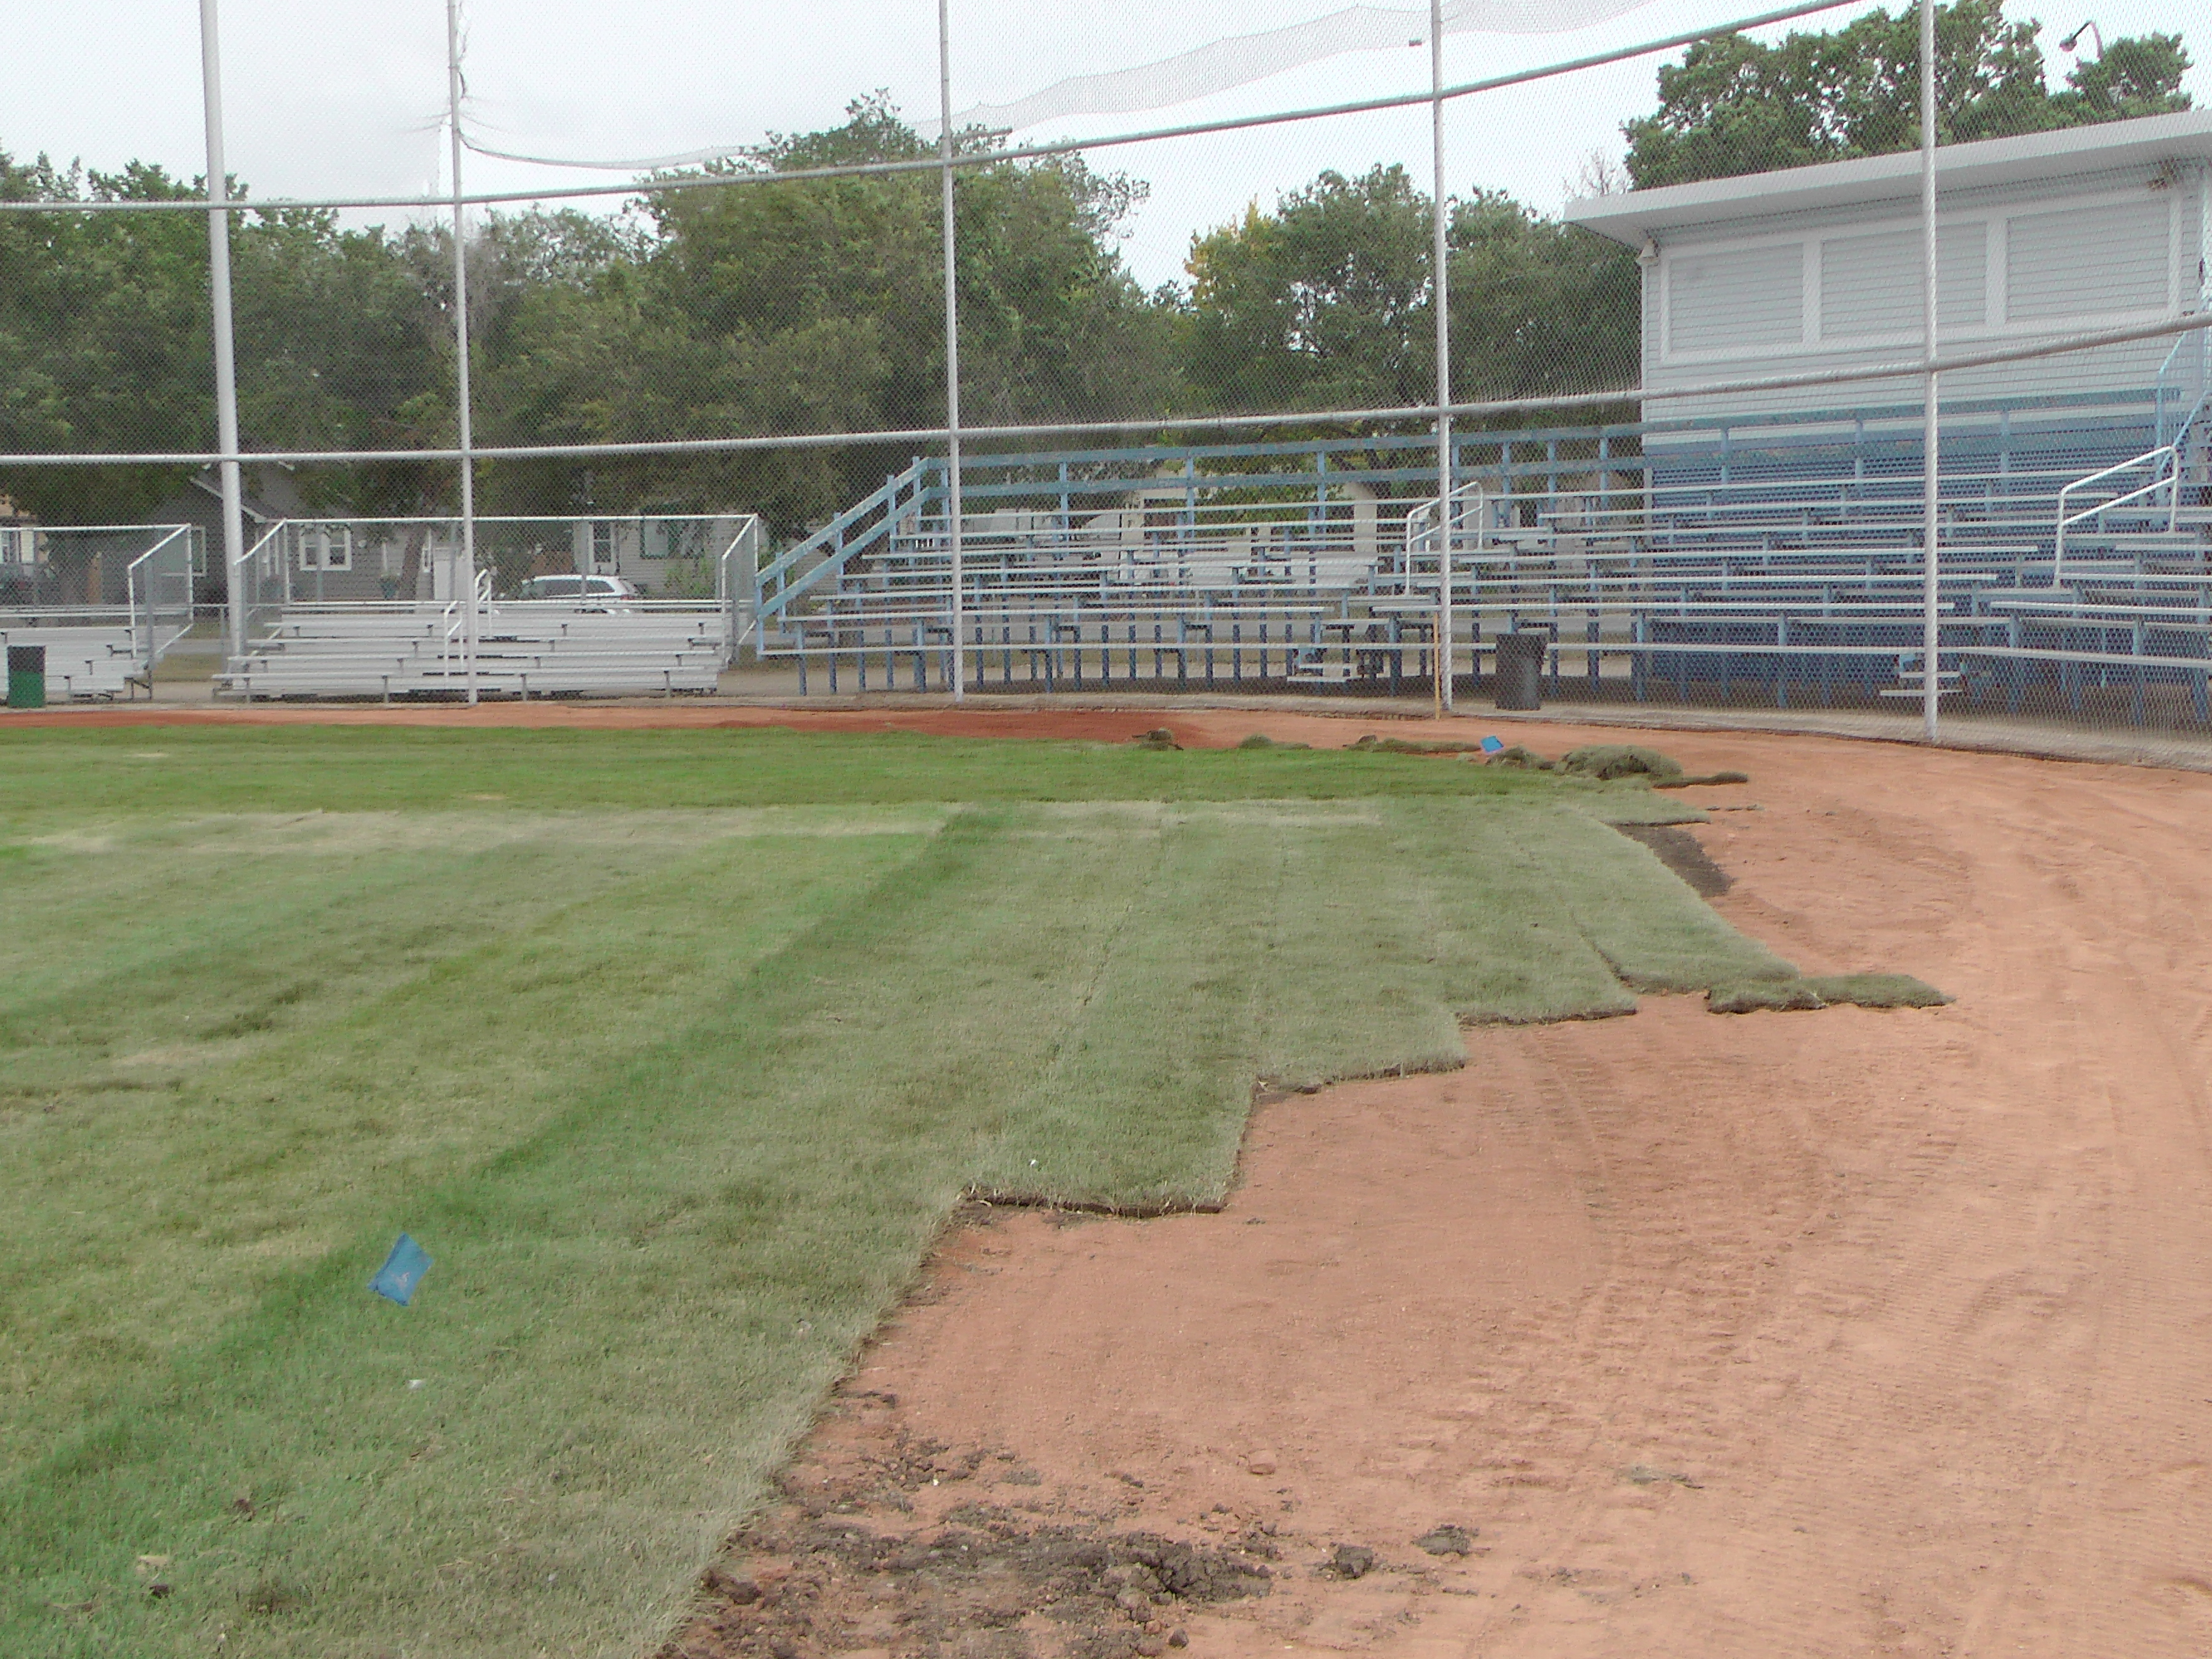 Sept 7 & 8 2018, Optimist Park Field Renovations, sod down being watered - Image 26